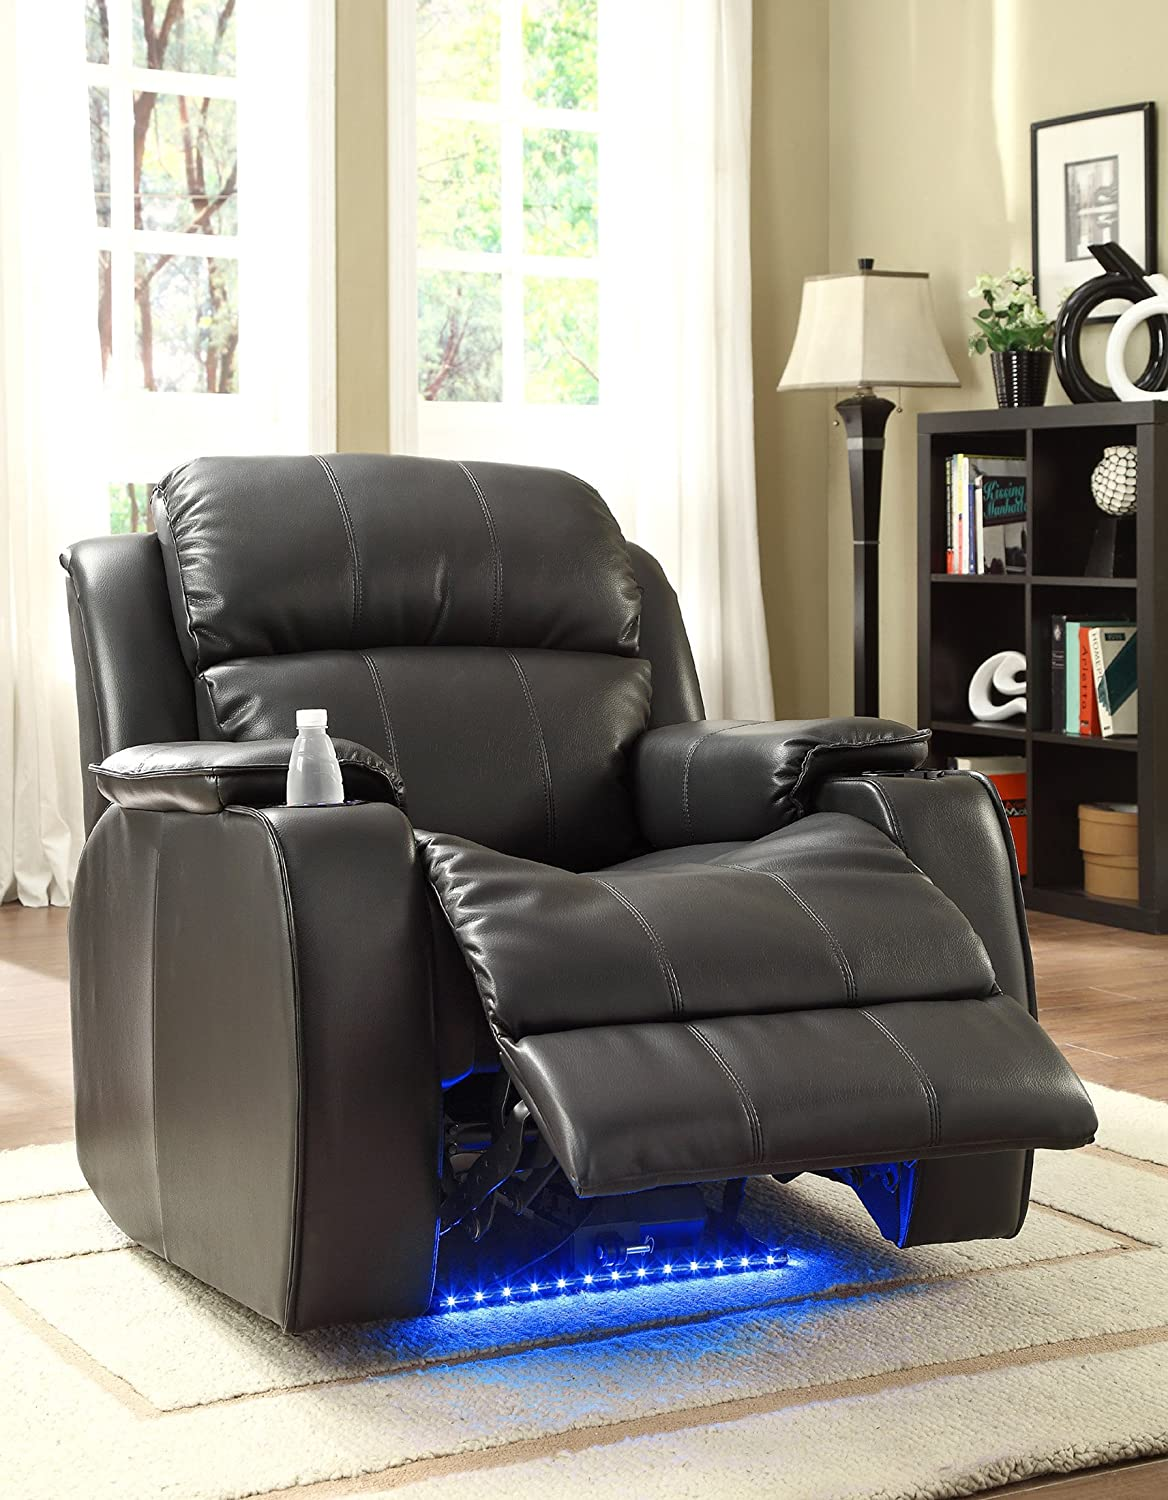 Amazon.com Homelegance 9745BLK-1 Jimmy Collection Upholstered Power Reclining Massage Chair Black Bonded Leather Kitchen u0026 Dining & Amazon.com: Homelegance 9745BLK-1 Jimmy Collection Upholstered ... islam-shia.org